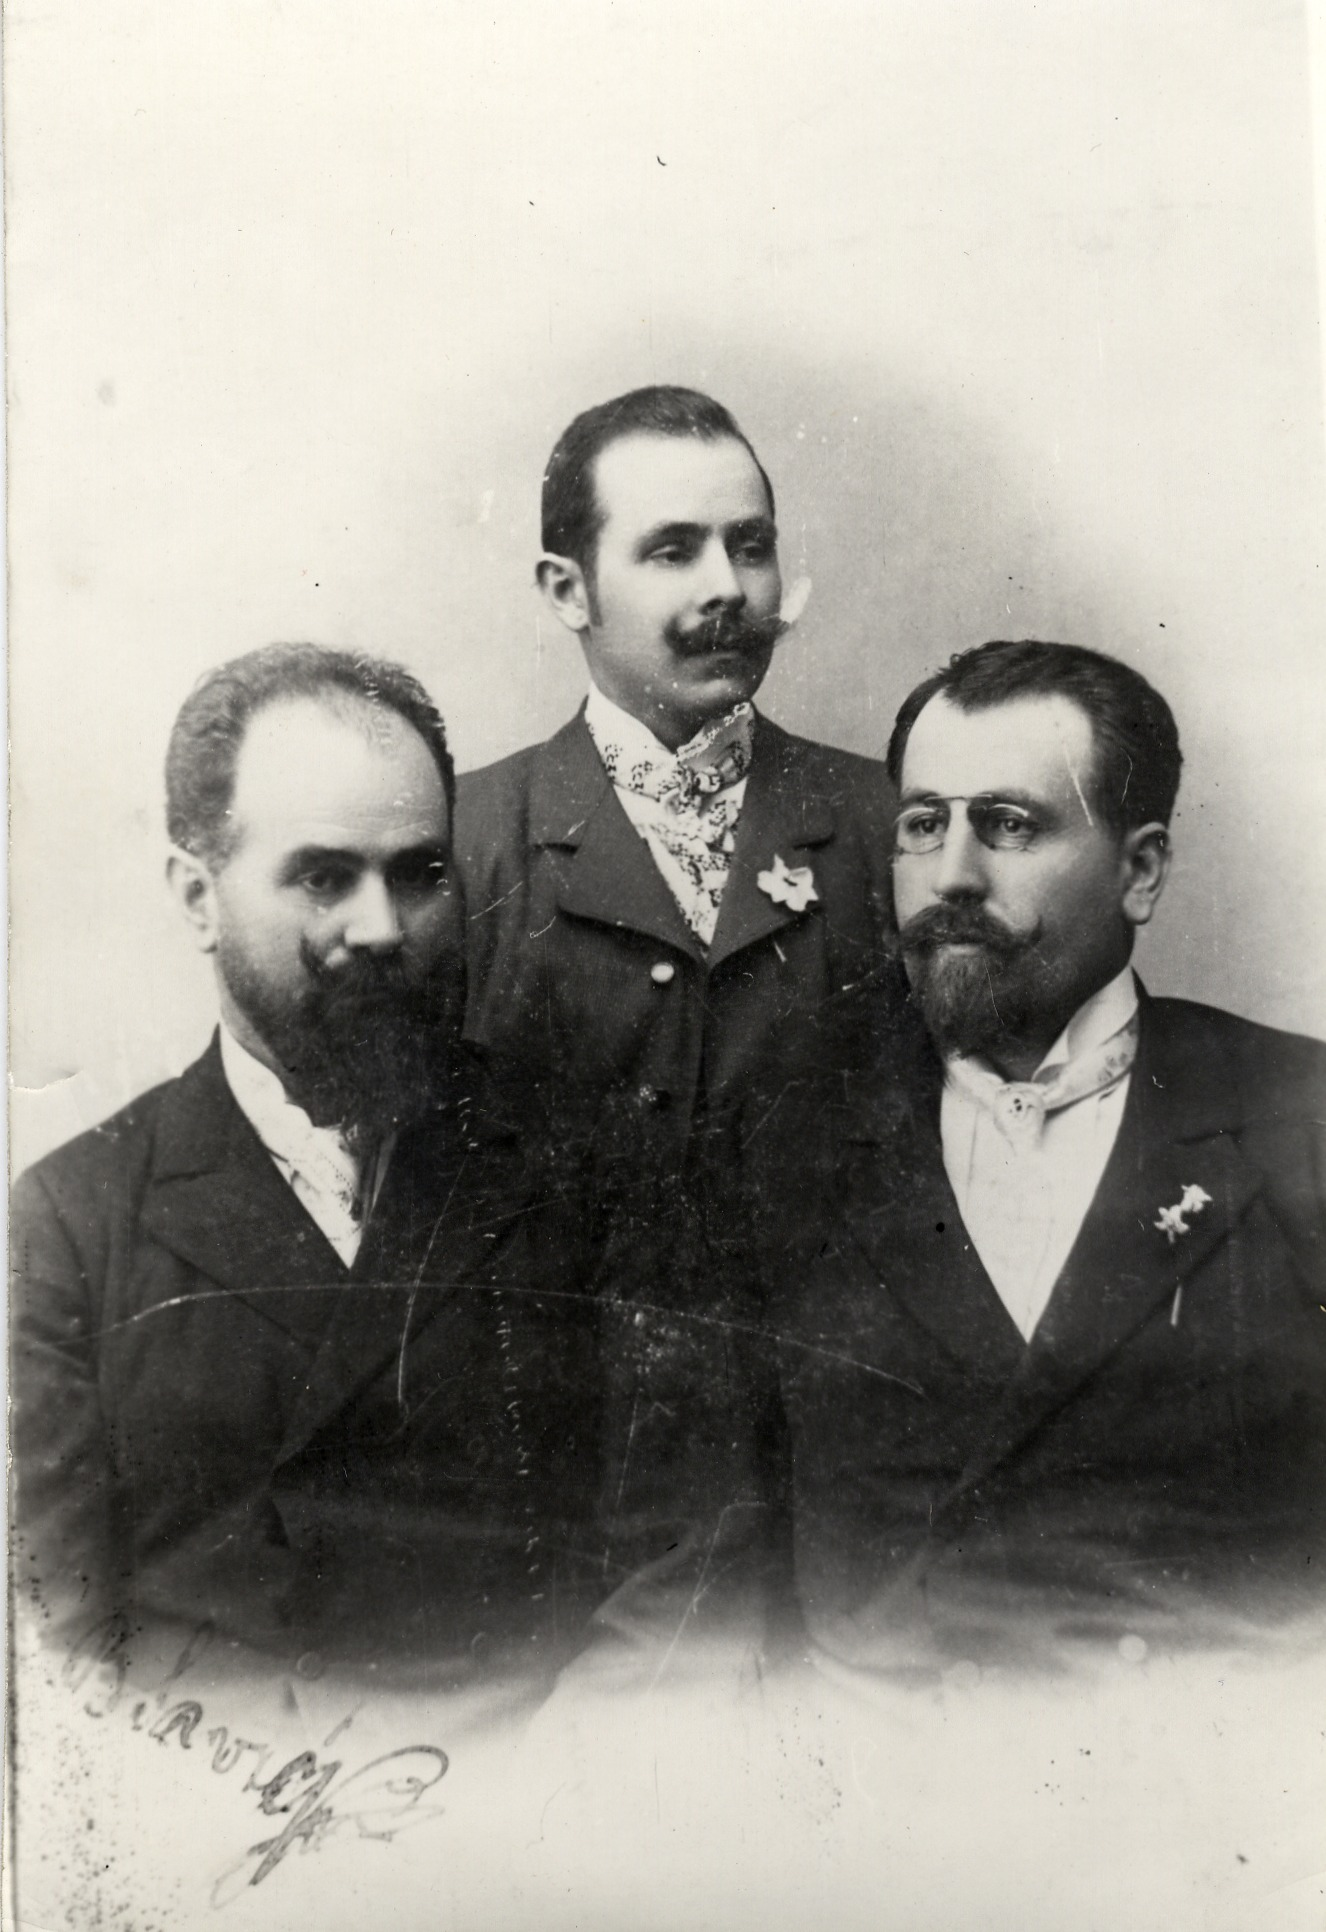 Serbian cinema-owners and film producers Boža (1862–1927), Pera (1868–1925) and Svetolik (1874–1944) Savić, © Jugoslovenska kinoteka, Belgrade